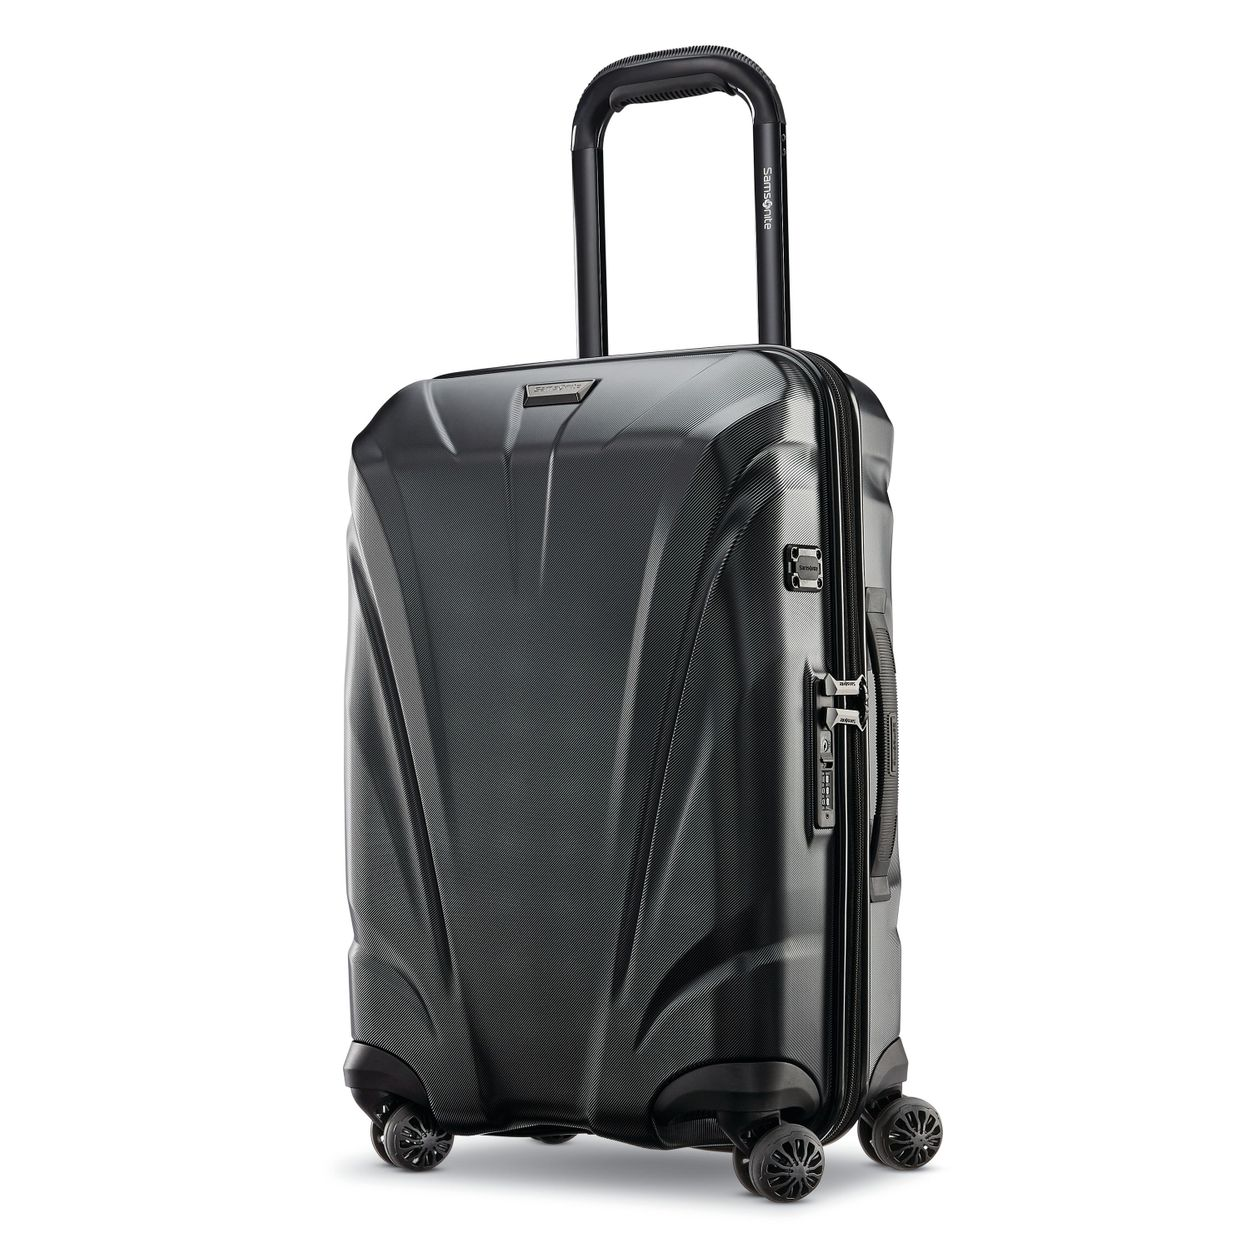 Carry-on, Carry on, luggage, suitcase,